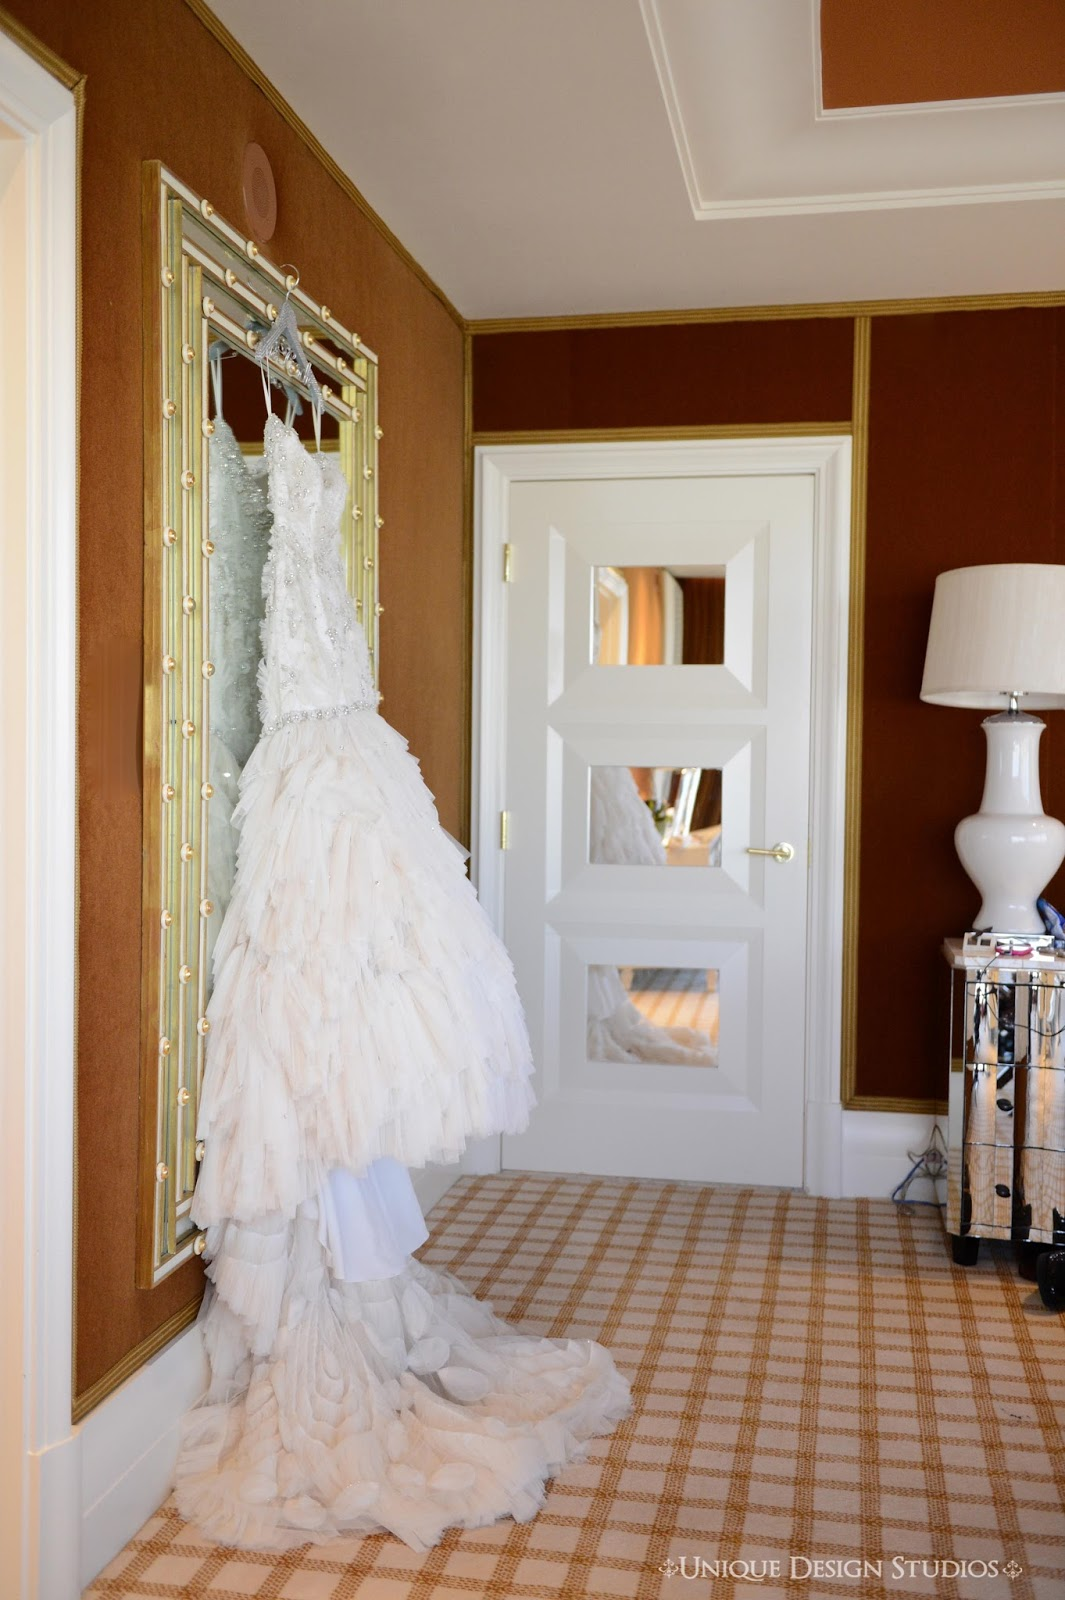 tiffany cook events omg unbelievable las vegas wedding ceremony brides gorgeous gown from chic parisien miami at encore hotel tower suites las vegas stunning 2 bedroom apartment the bride groom stayed in this suite